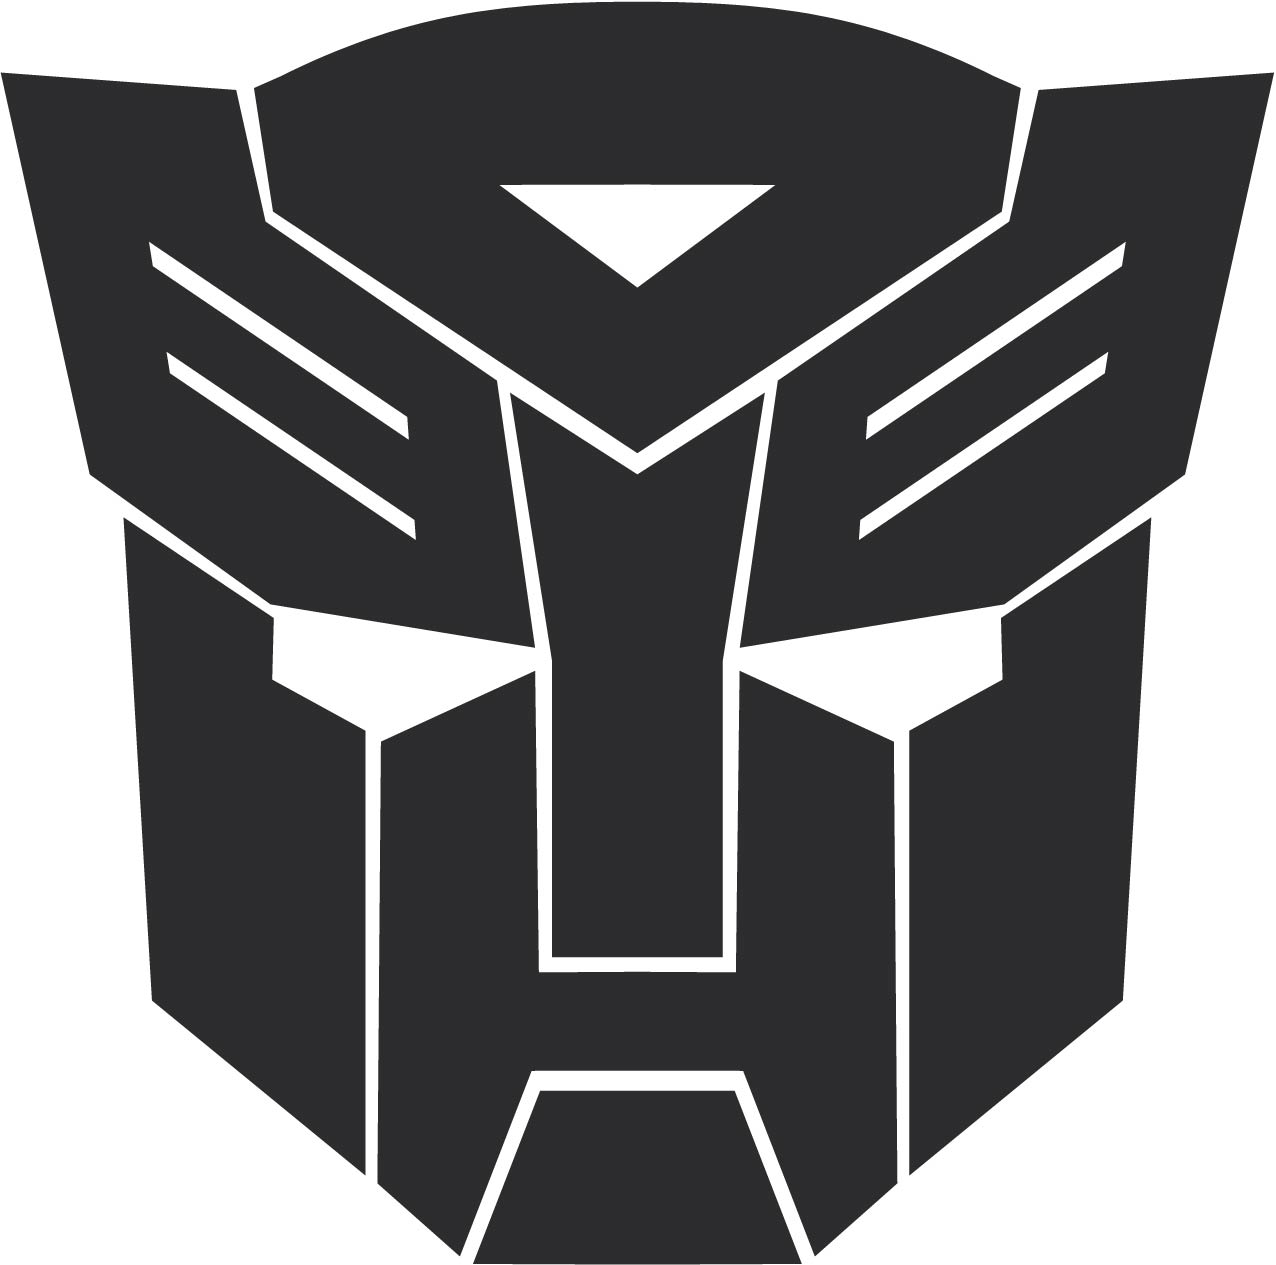 download autobot transformers logo vector in eps ai format